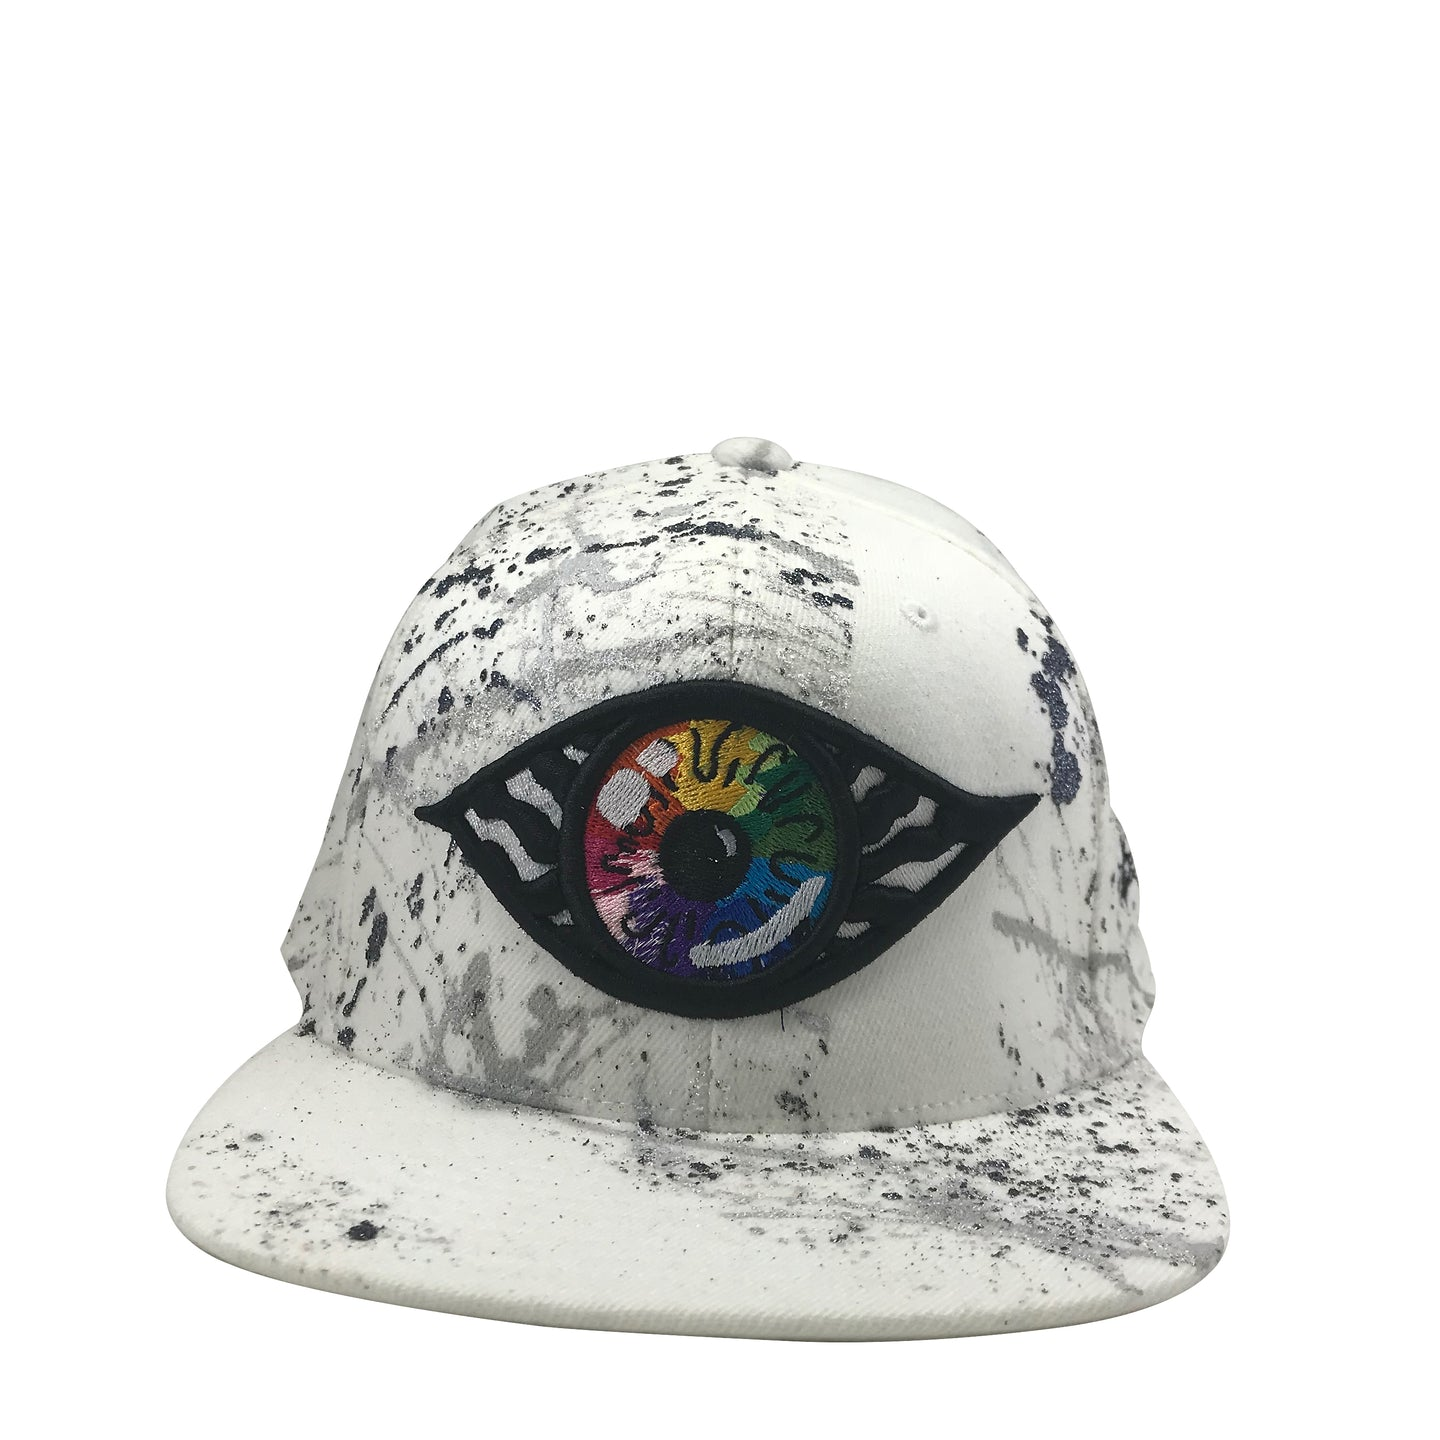 Hat - Unique hand painted Silver / Rainbow